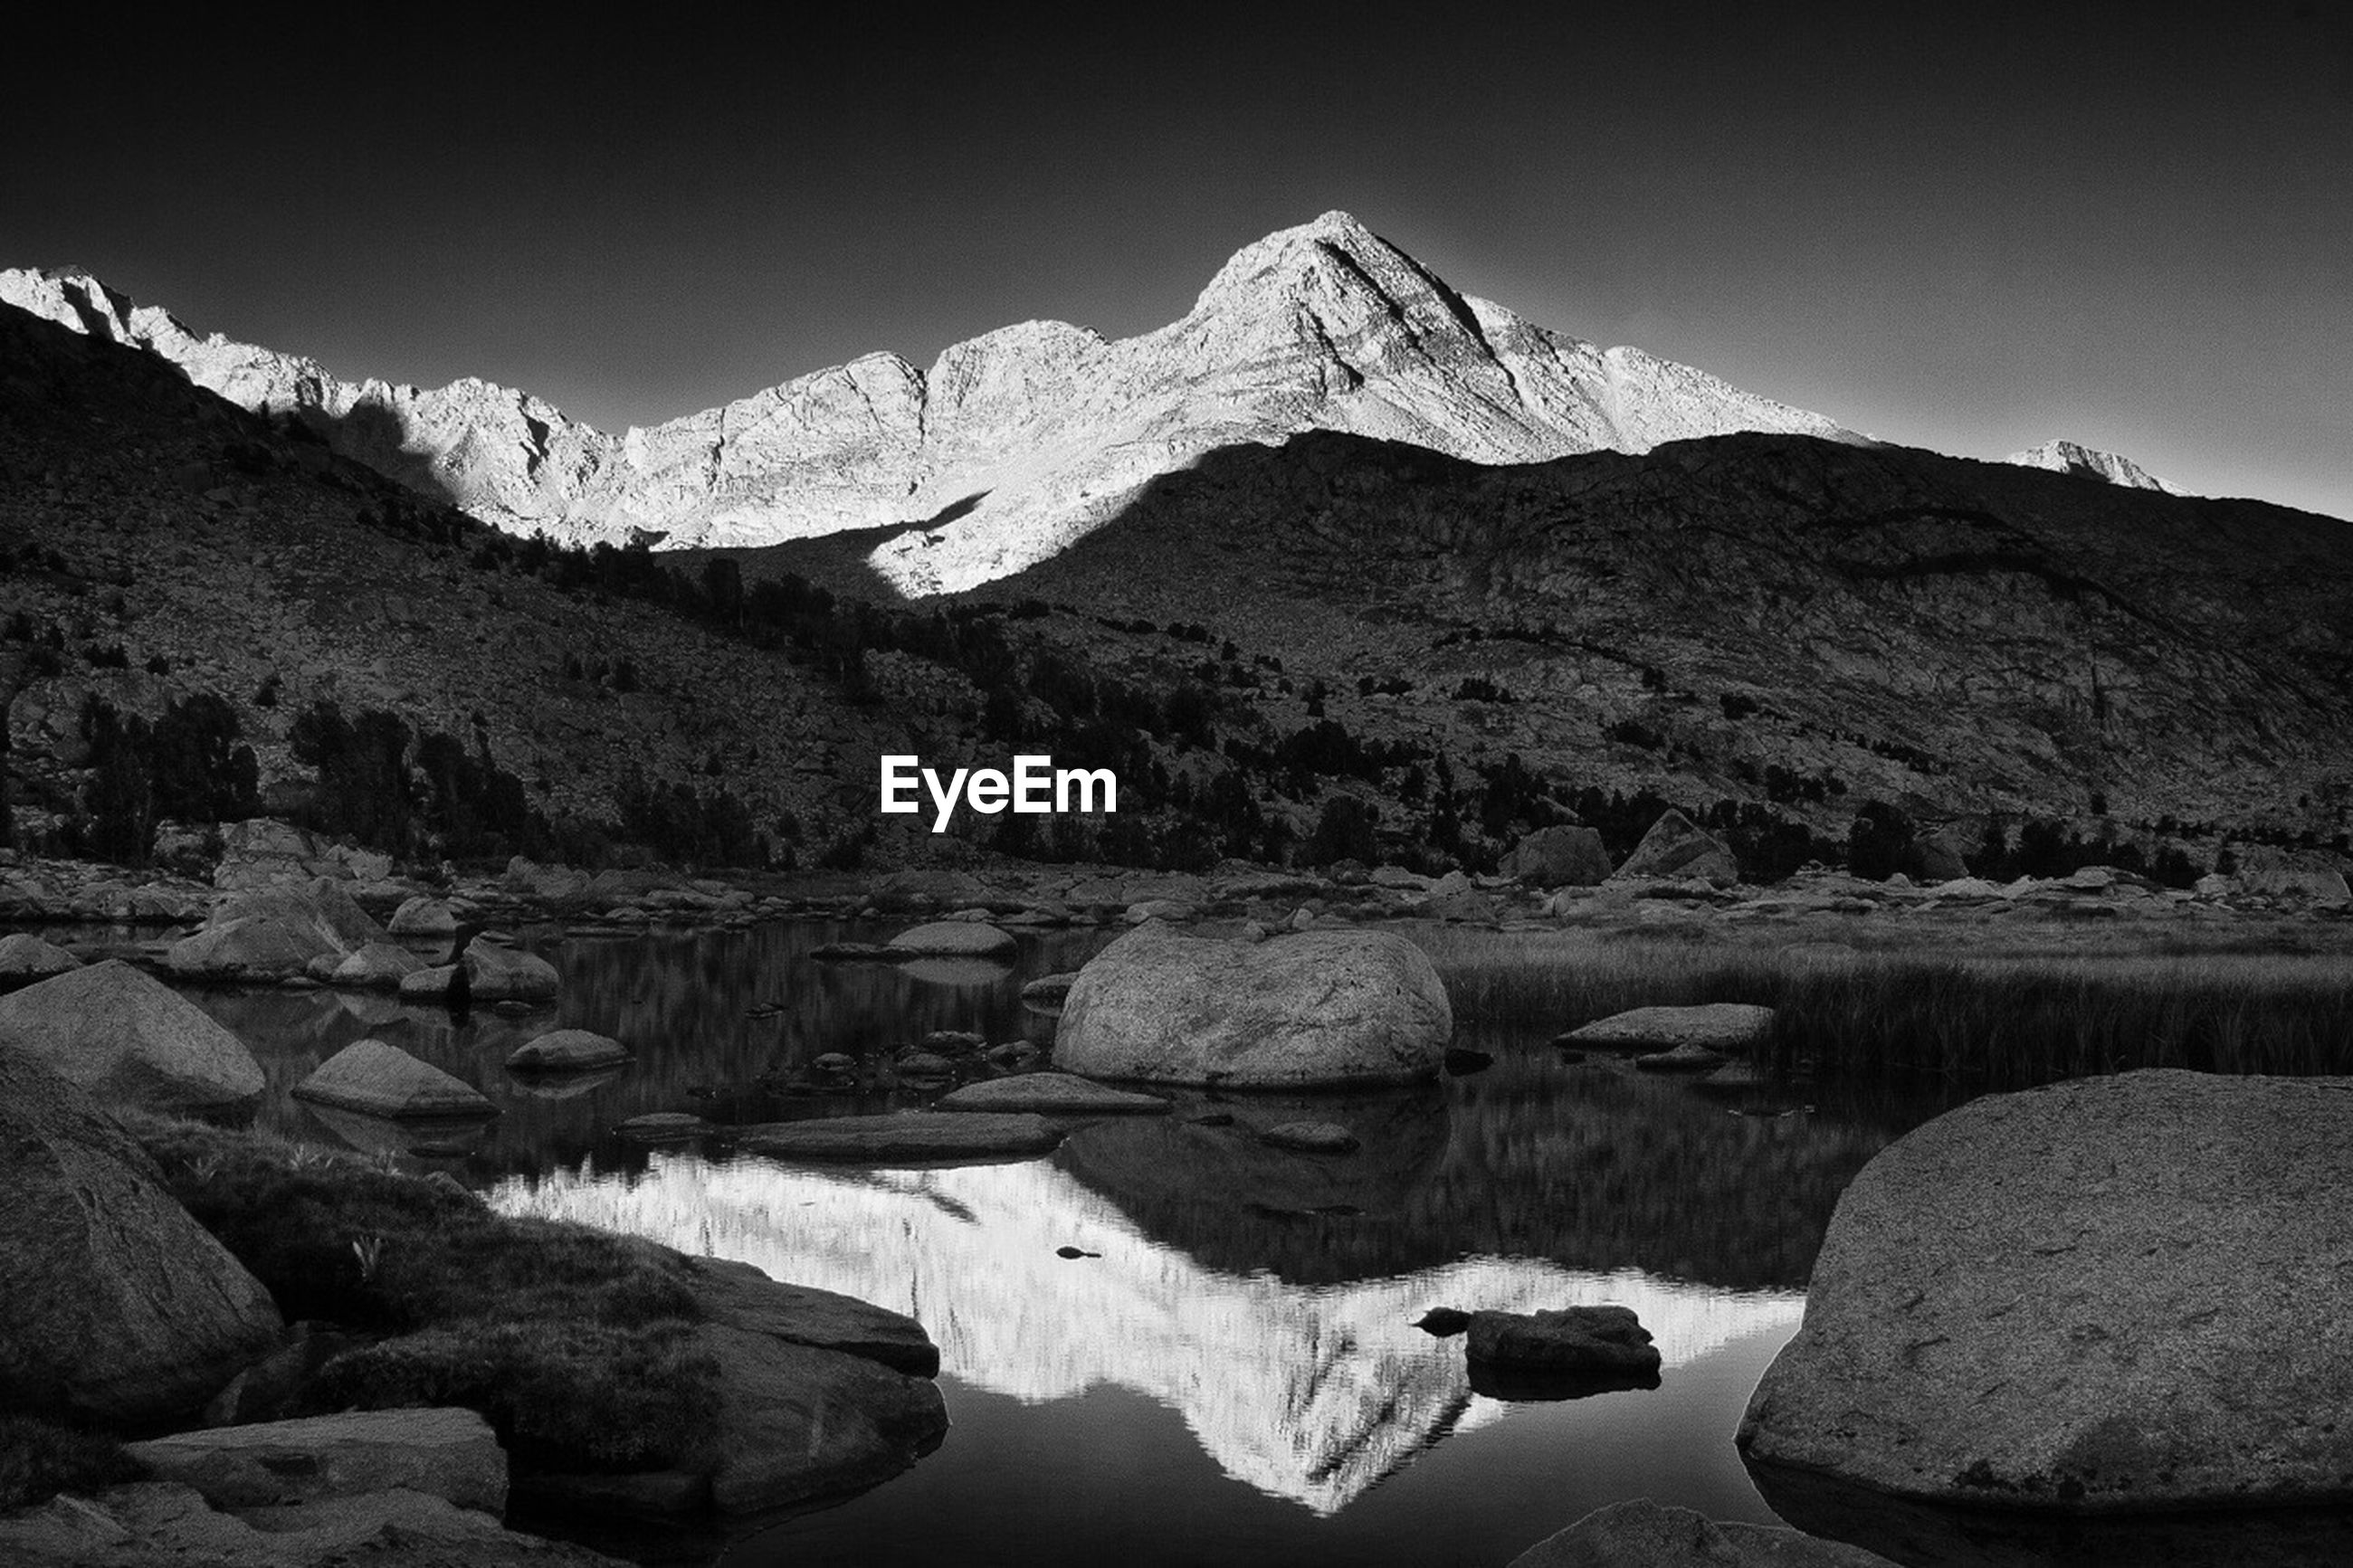 SCENIC VIEW OF RIVER AMIDST MOUNTAINS AGAINST CLEAR SKY